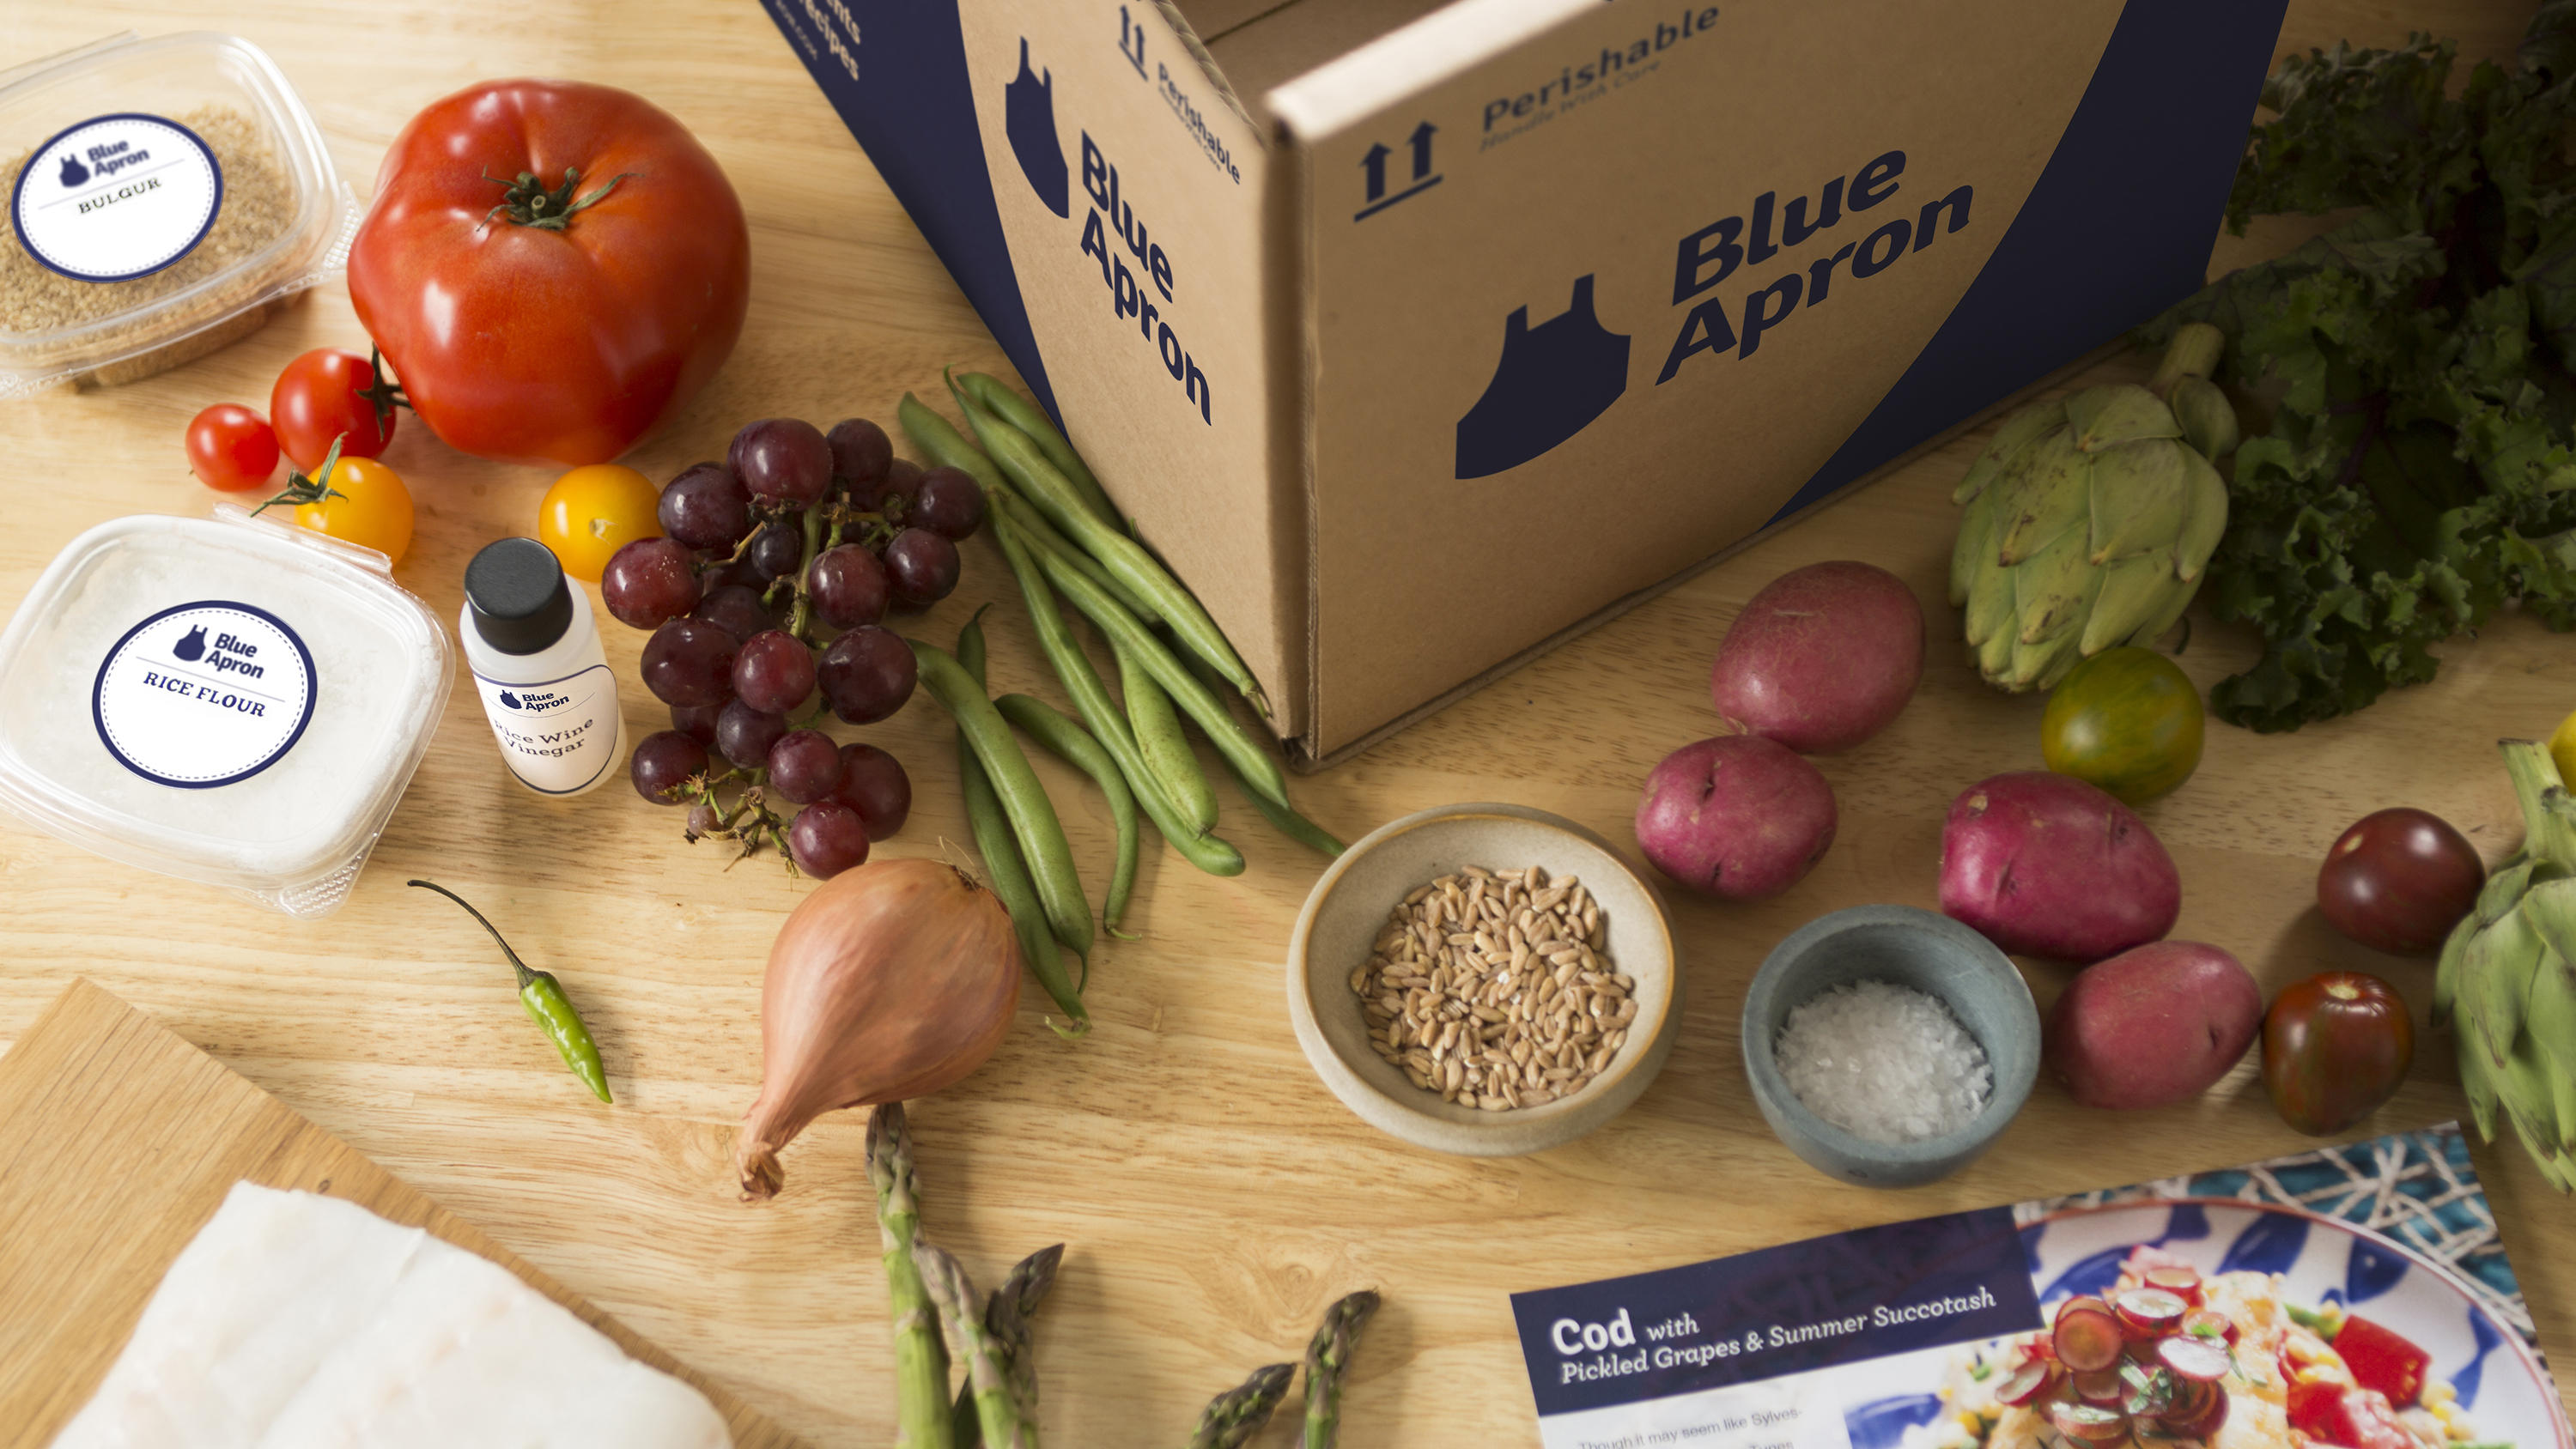 Blue apron hq - Skip The Store Grocery Delivery Service Blue Apron Expands To The West